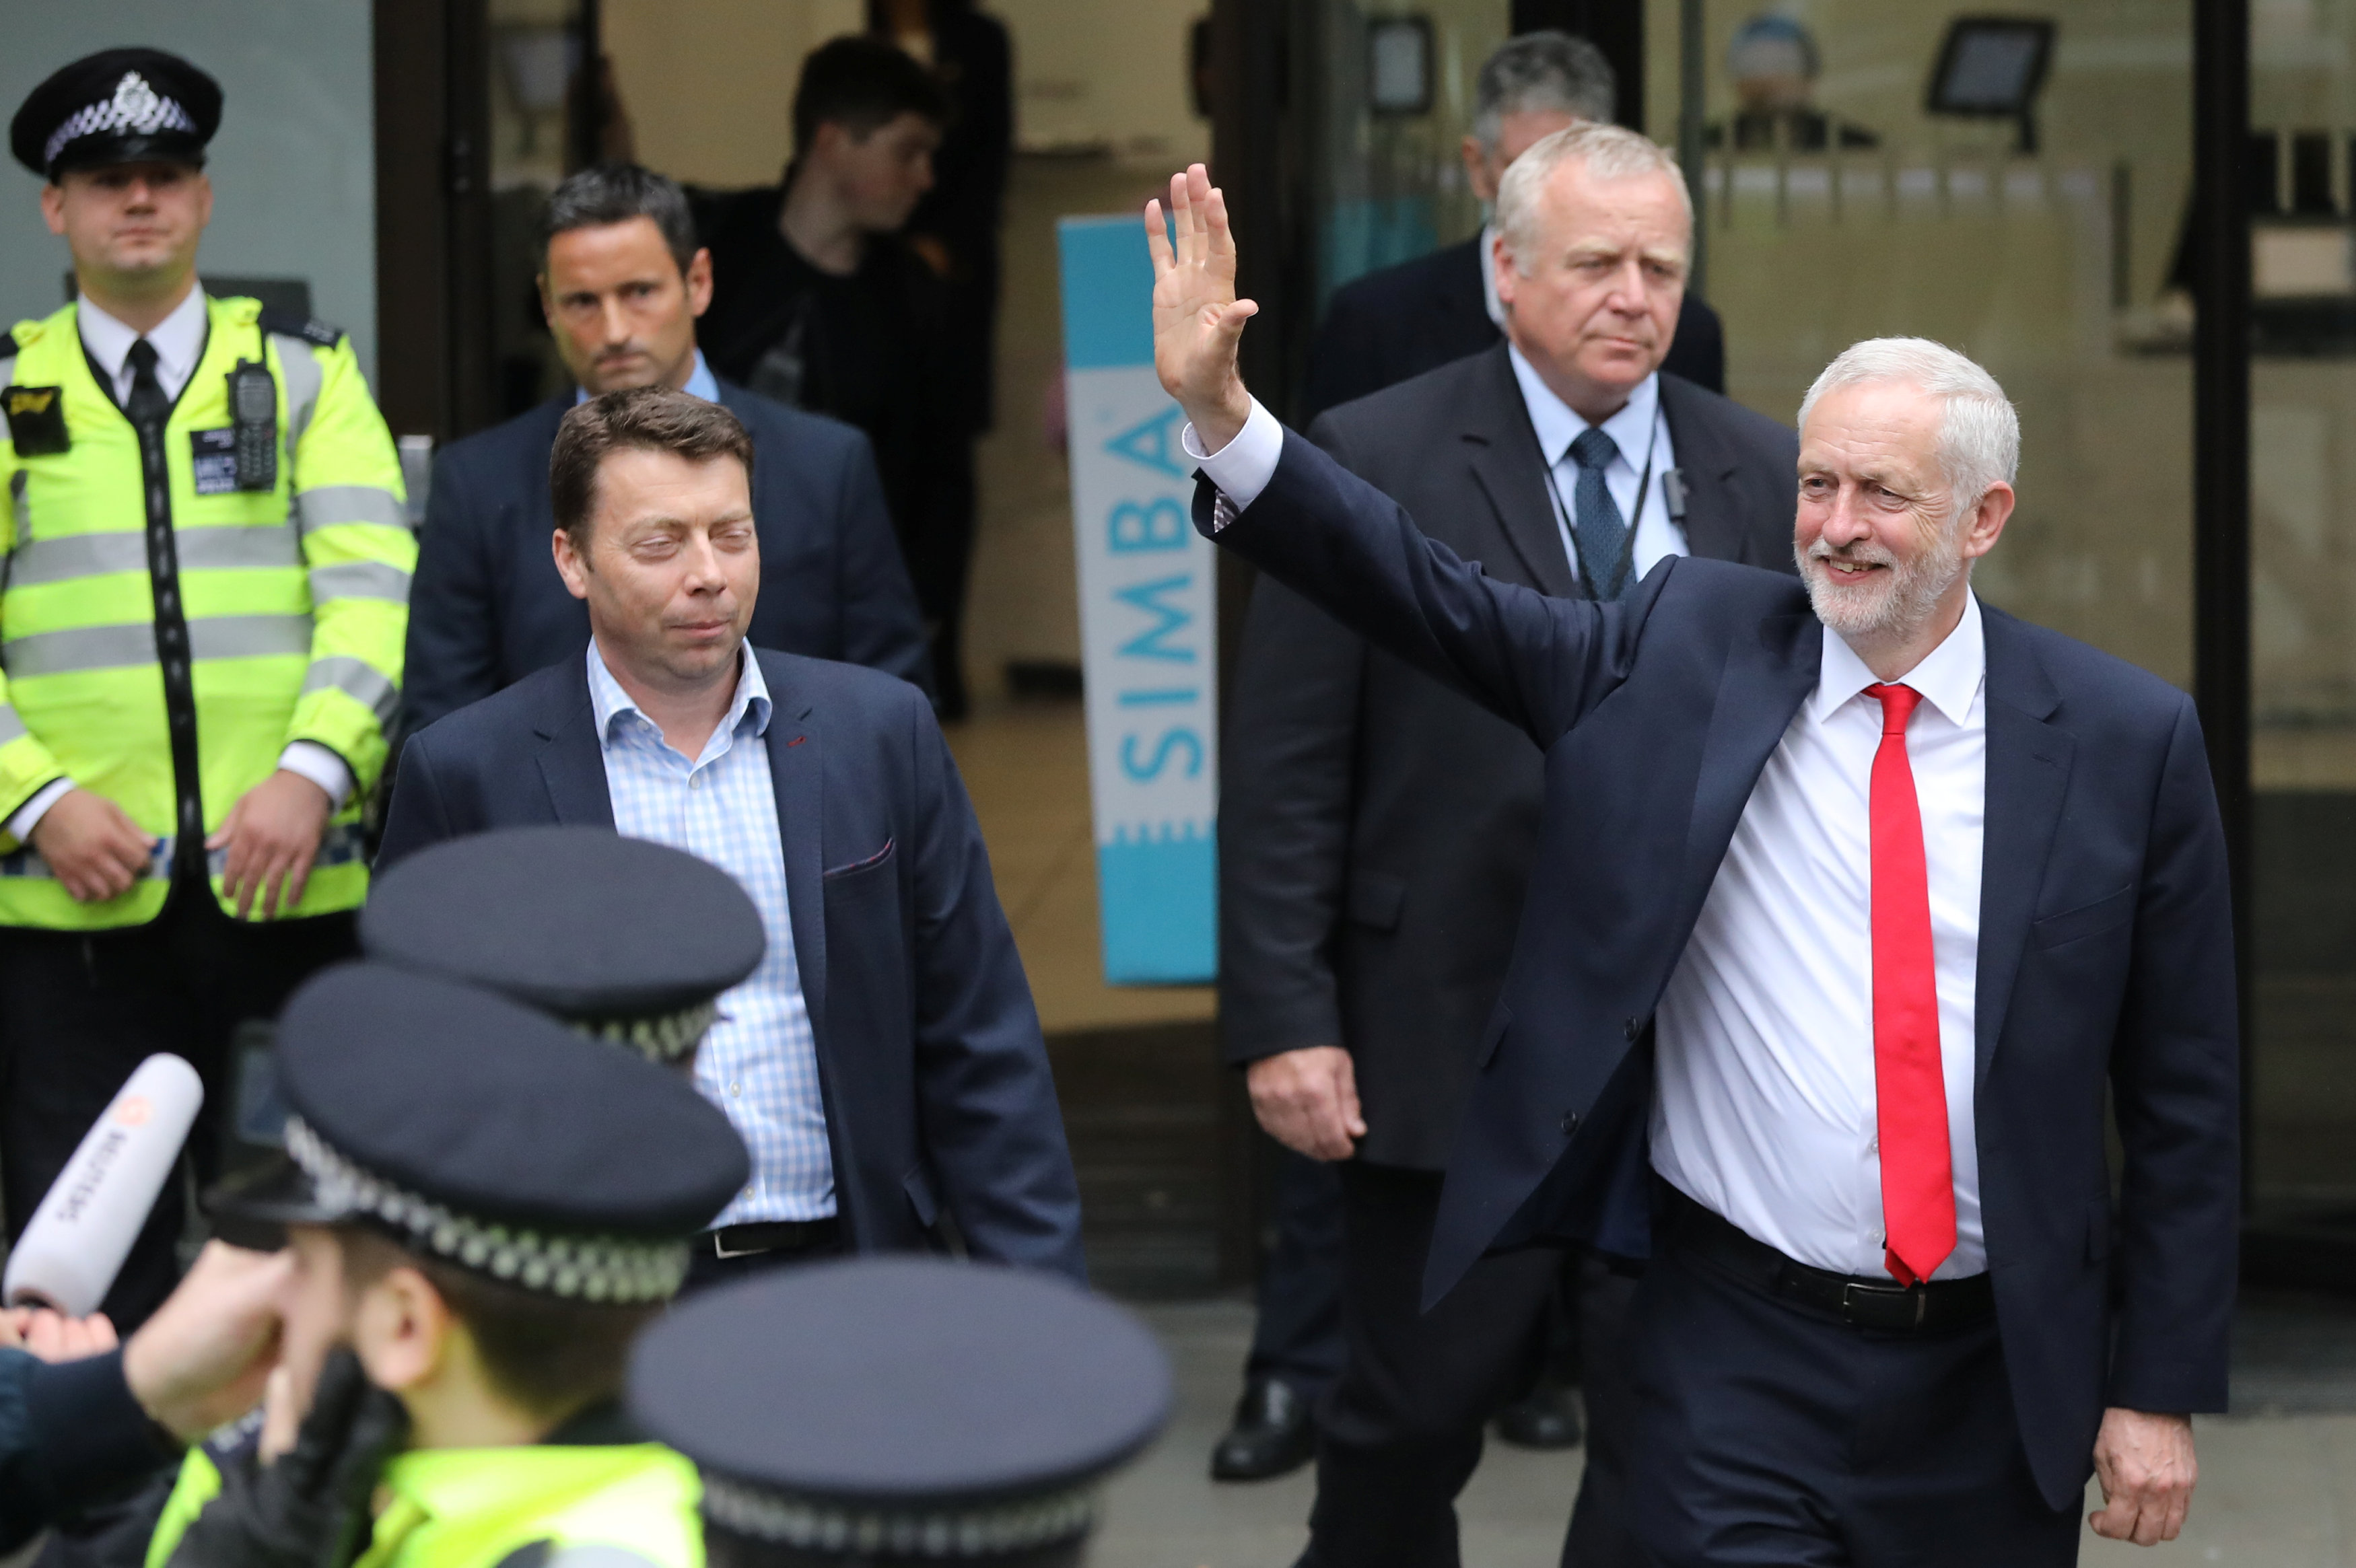 Jeremy Corbyn, leader of Britain's opposition Labour Party, leaves the Labour Party's Headquarters on the morning after Britain's election in London, Britain on June 9, 2017. (REUTERS/Marko Djurica)